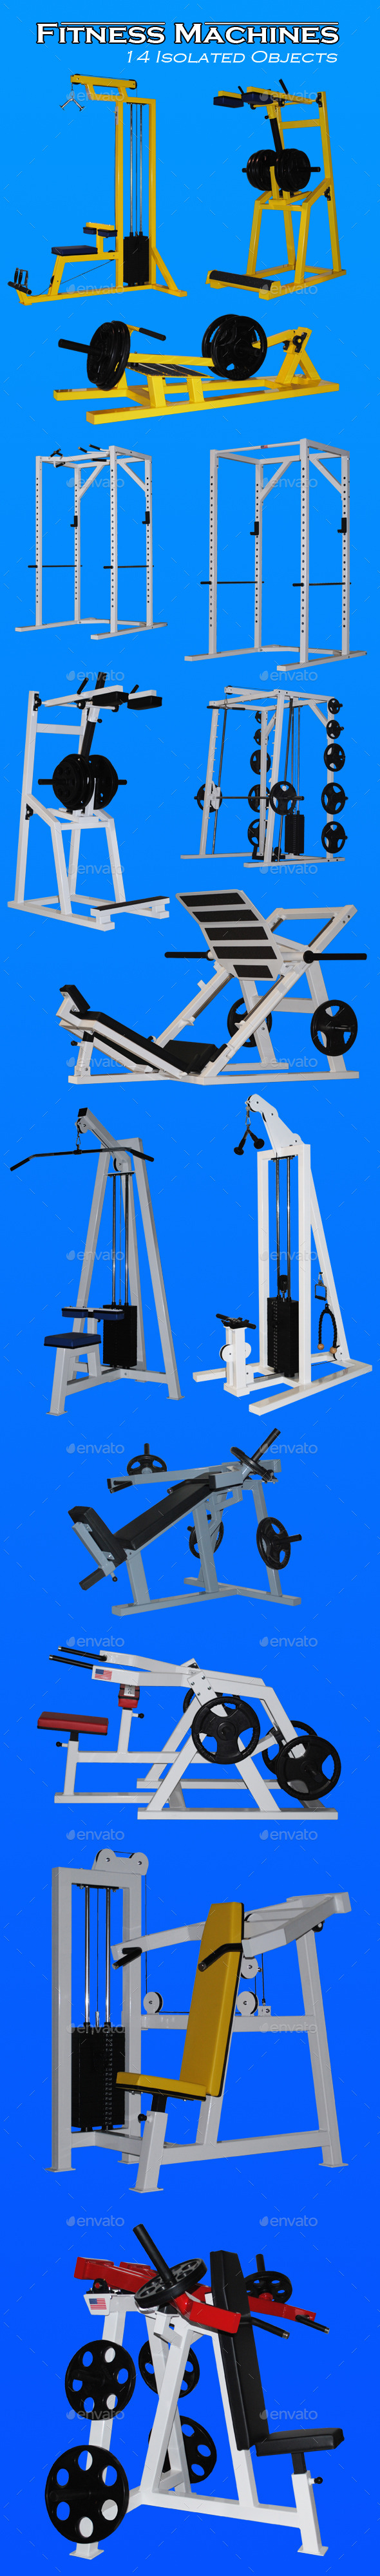 Fitness Machines - Activities & Leisure Isolated Objects